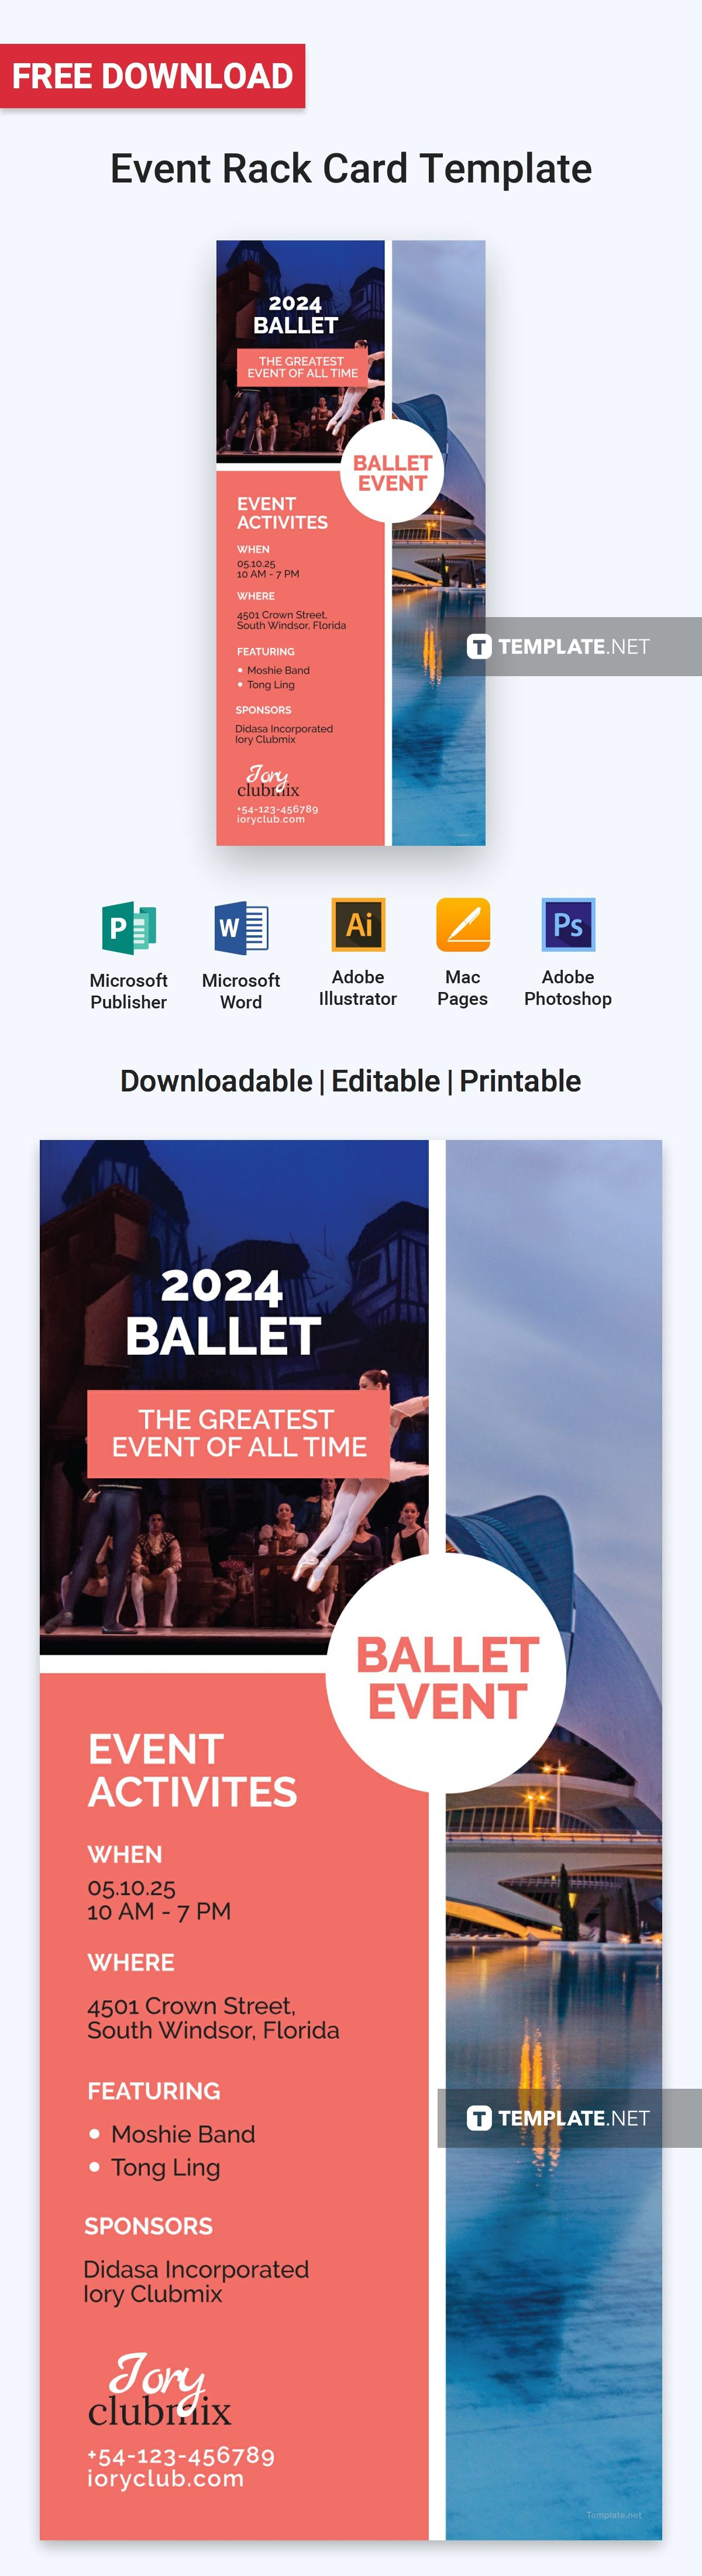 Event Rack Card Template Illustrator Word Apple Pages Psd Pdf Publisher Template Net Rack Card Templates Rack Card Card Template Rack card template microsoft word